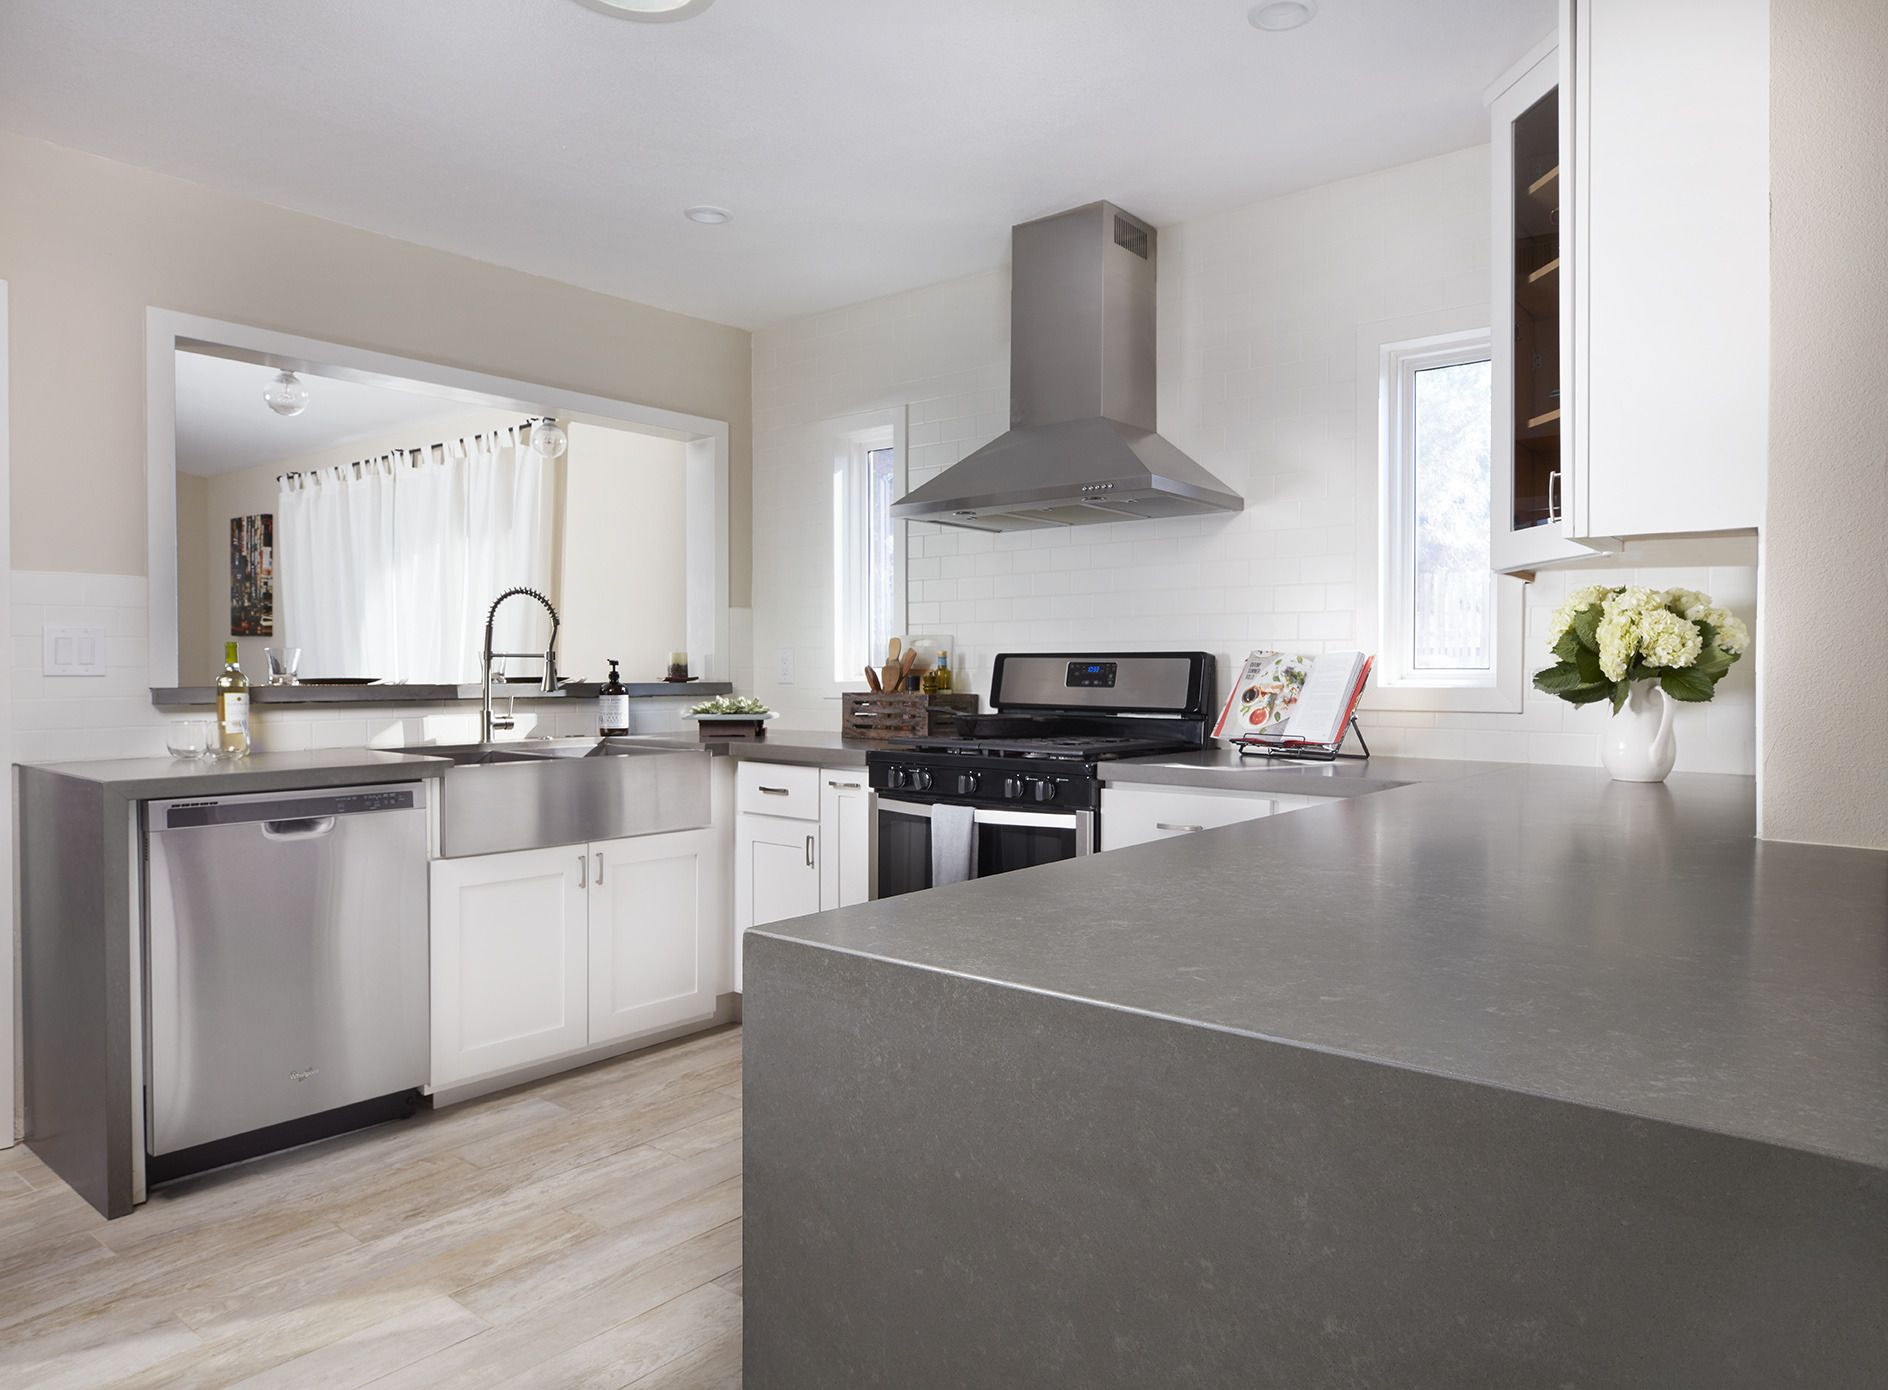 Thereu0027s No Denying The #quartz Countertop Craze! The Texture Of These  Metropolis Grey Quartz Slabs Gives These Countertops The Look Of Concrete.  ...